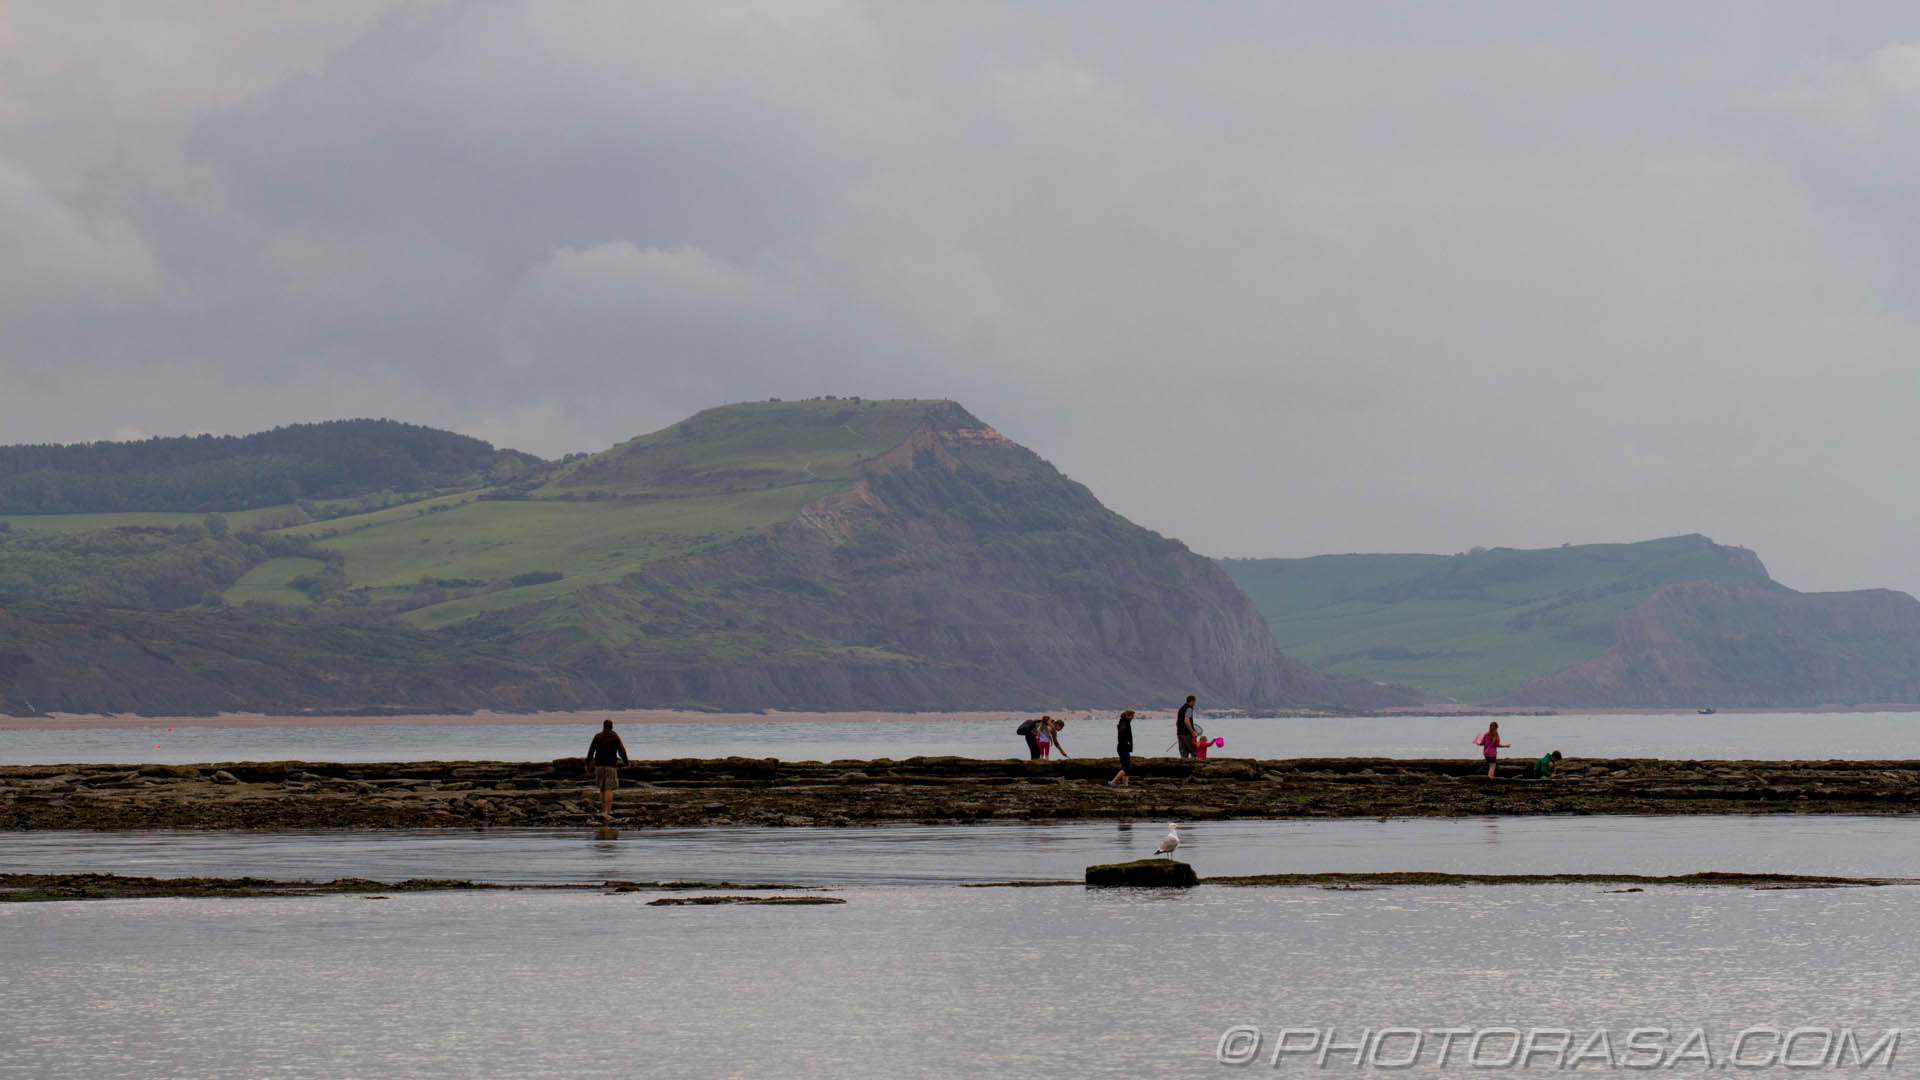 http://photorasa.com/jurassic-coast-lyme-regis/family-looking-in-the-beachy-rocks/